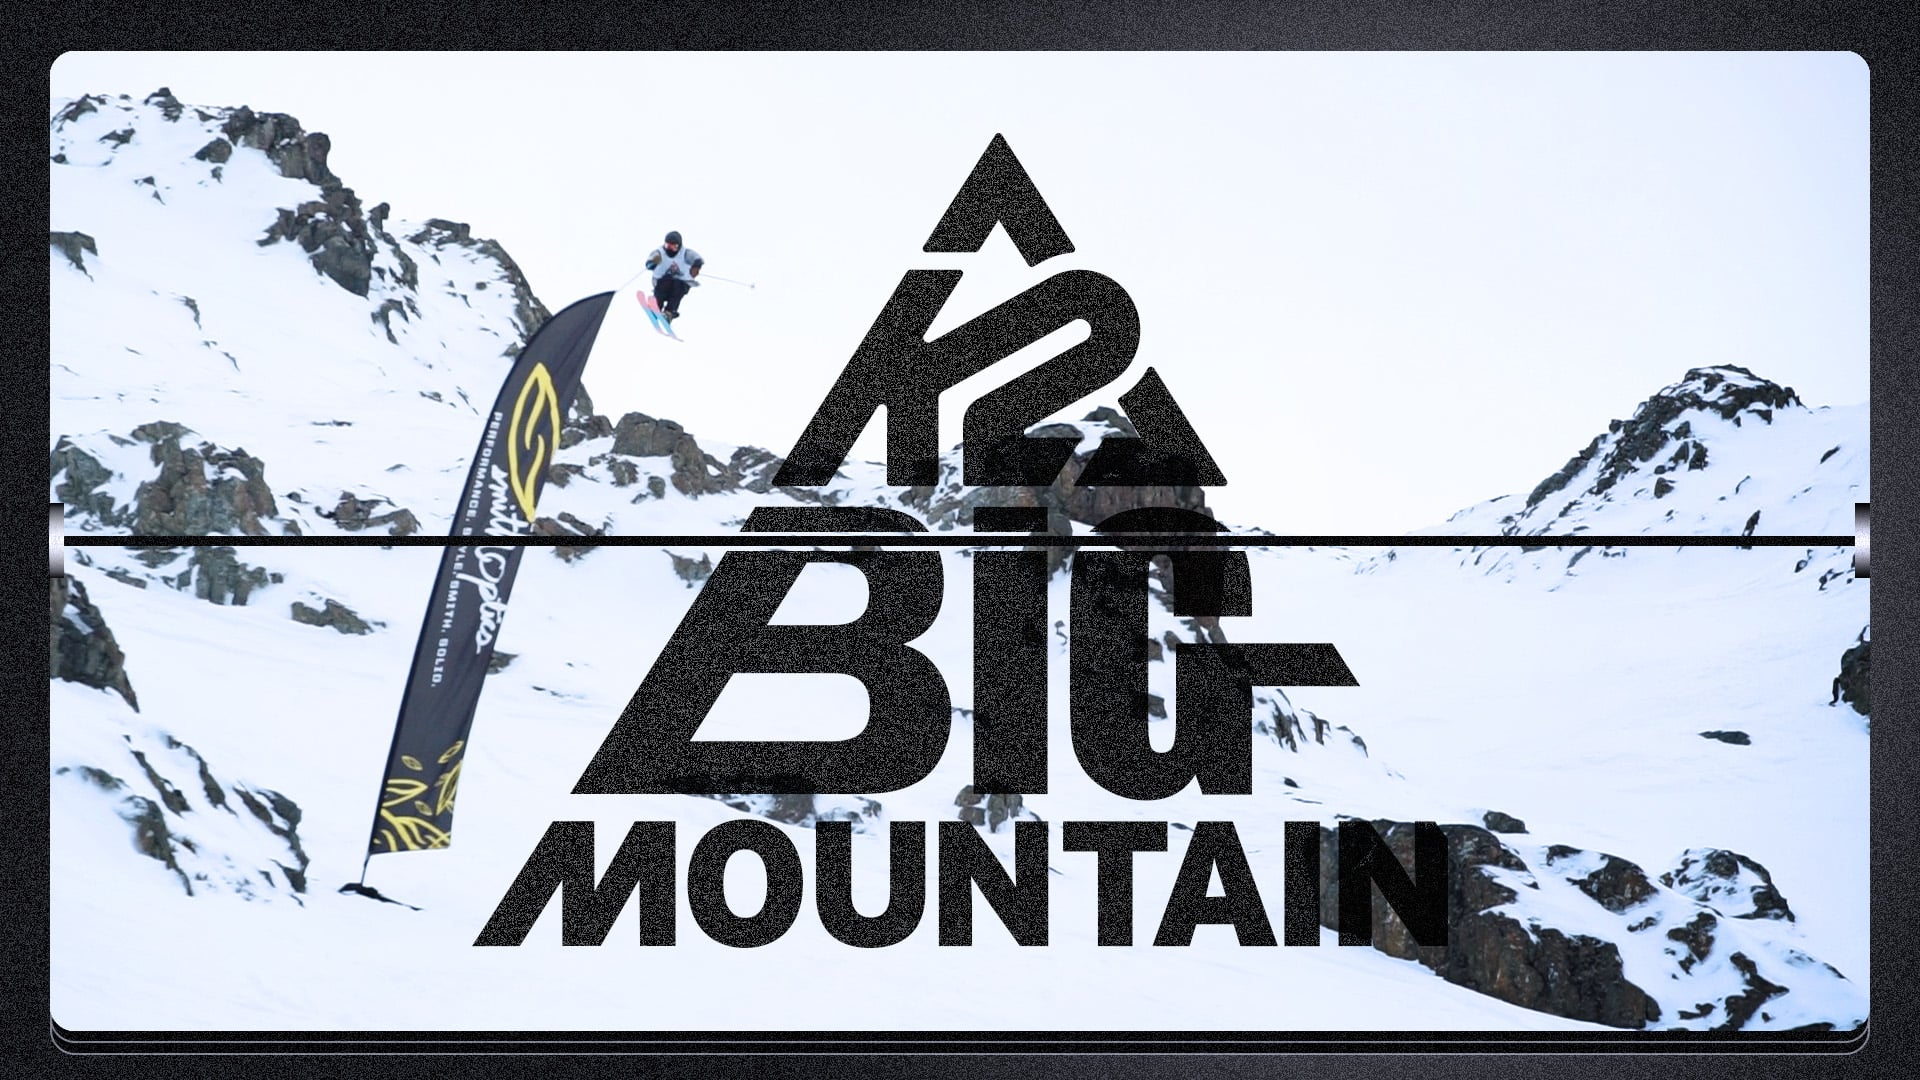 skiing event title card